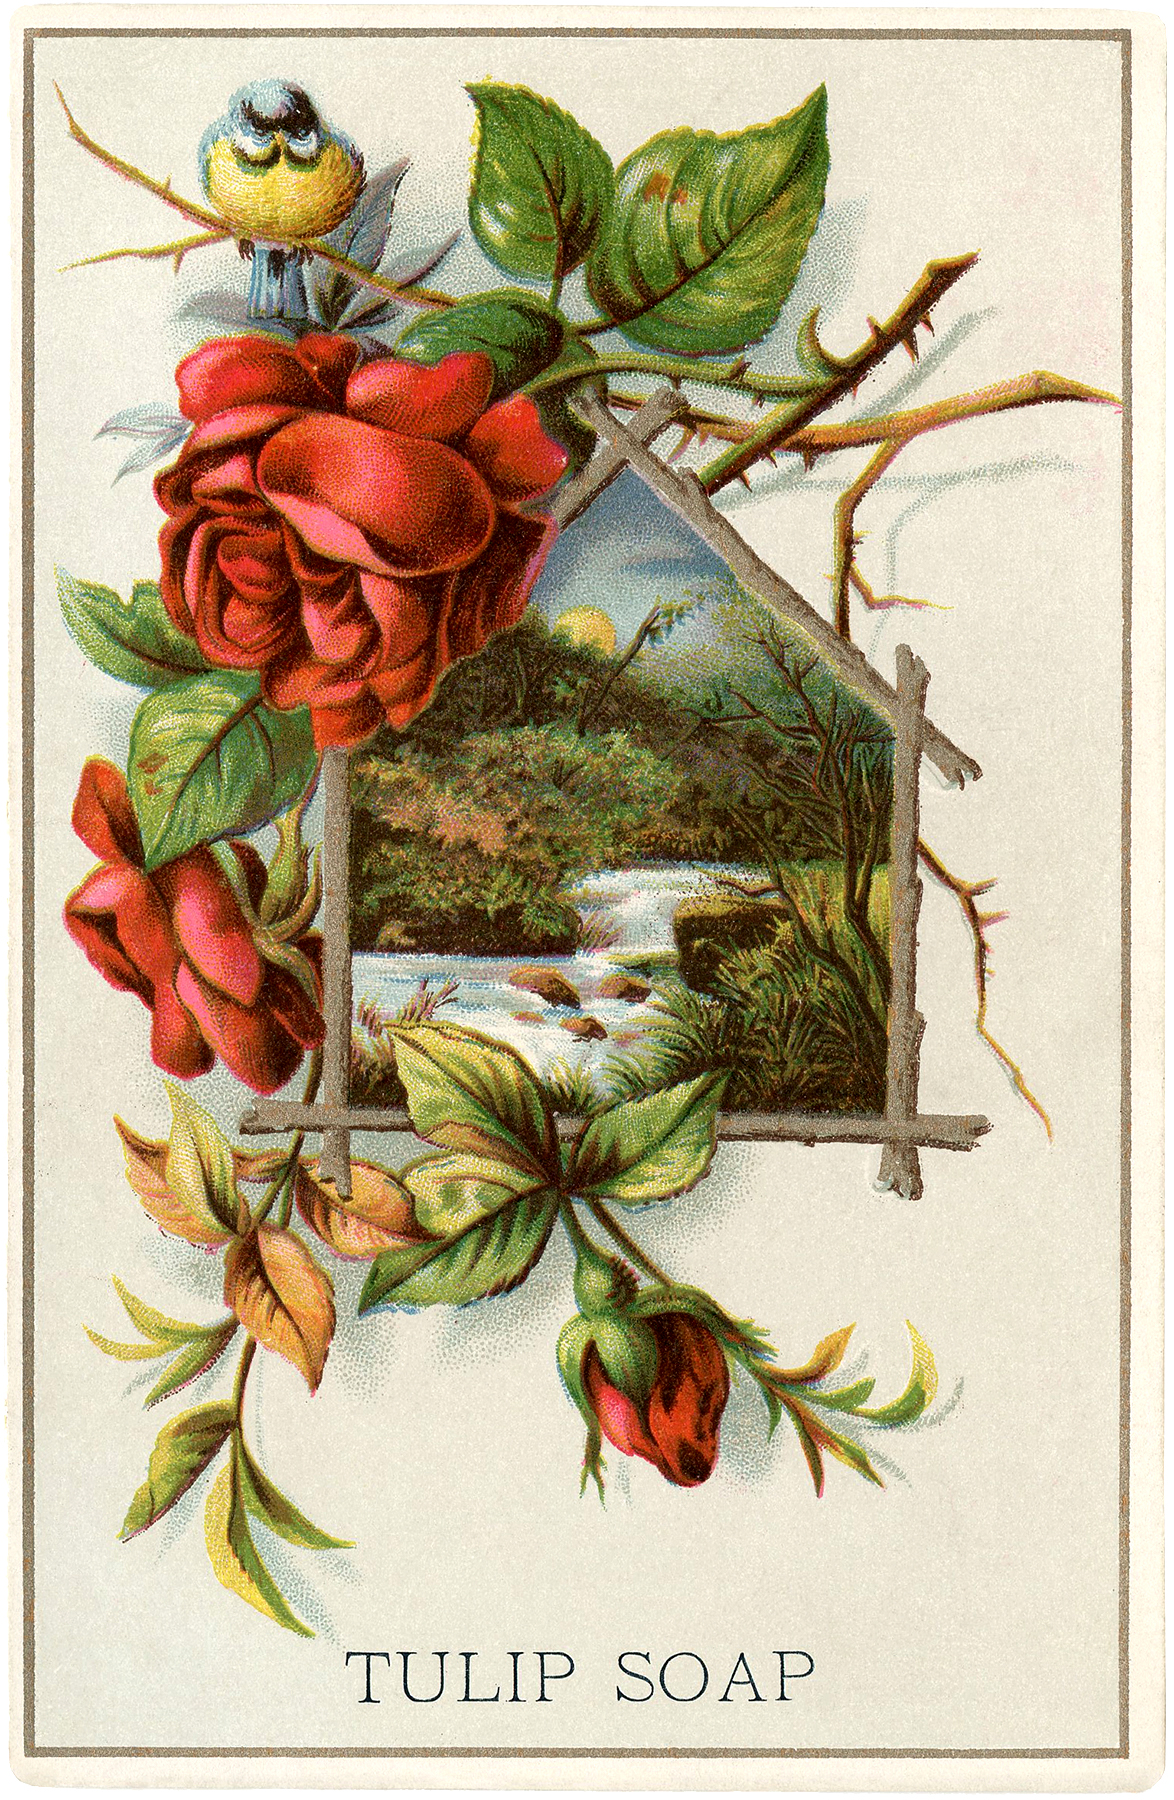 The Graphics Fairy: Lovely Vintage Landscape With Roses!